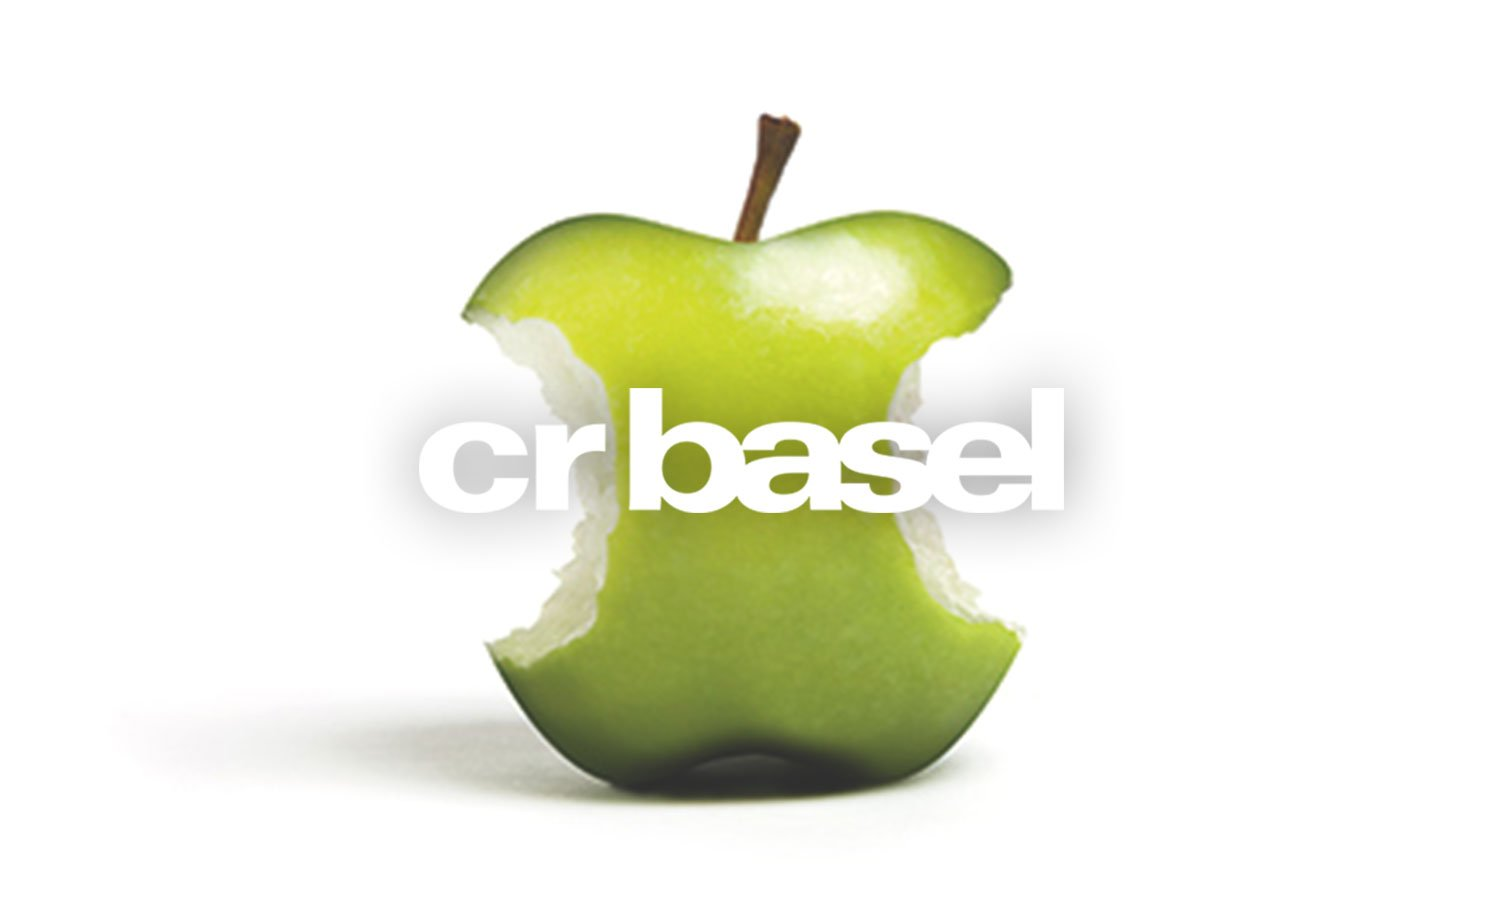 crbasel_interview